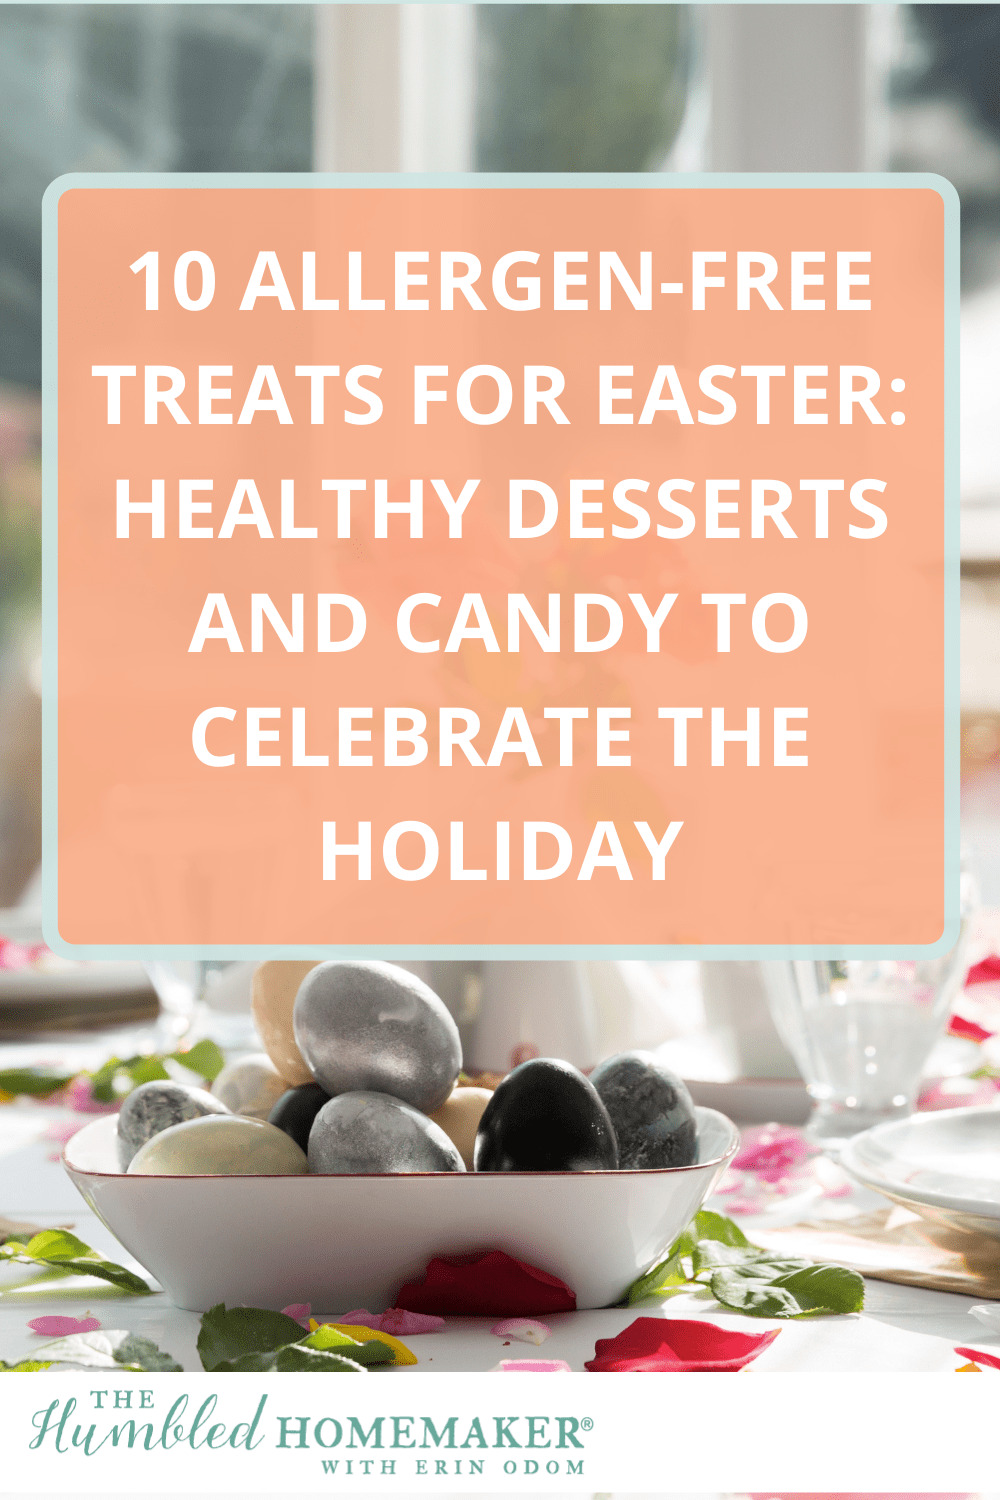 Trying to navigate Easter with food allergies? These allergy-friendly Easter desserts and sweets will give your family a treat--without making them sick.